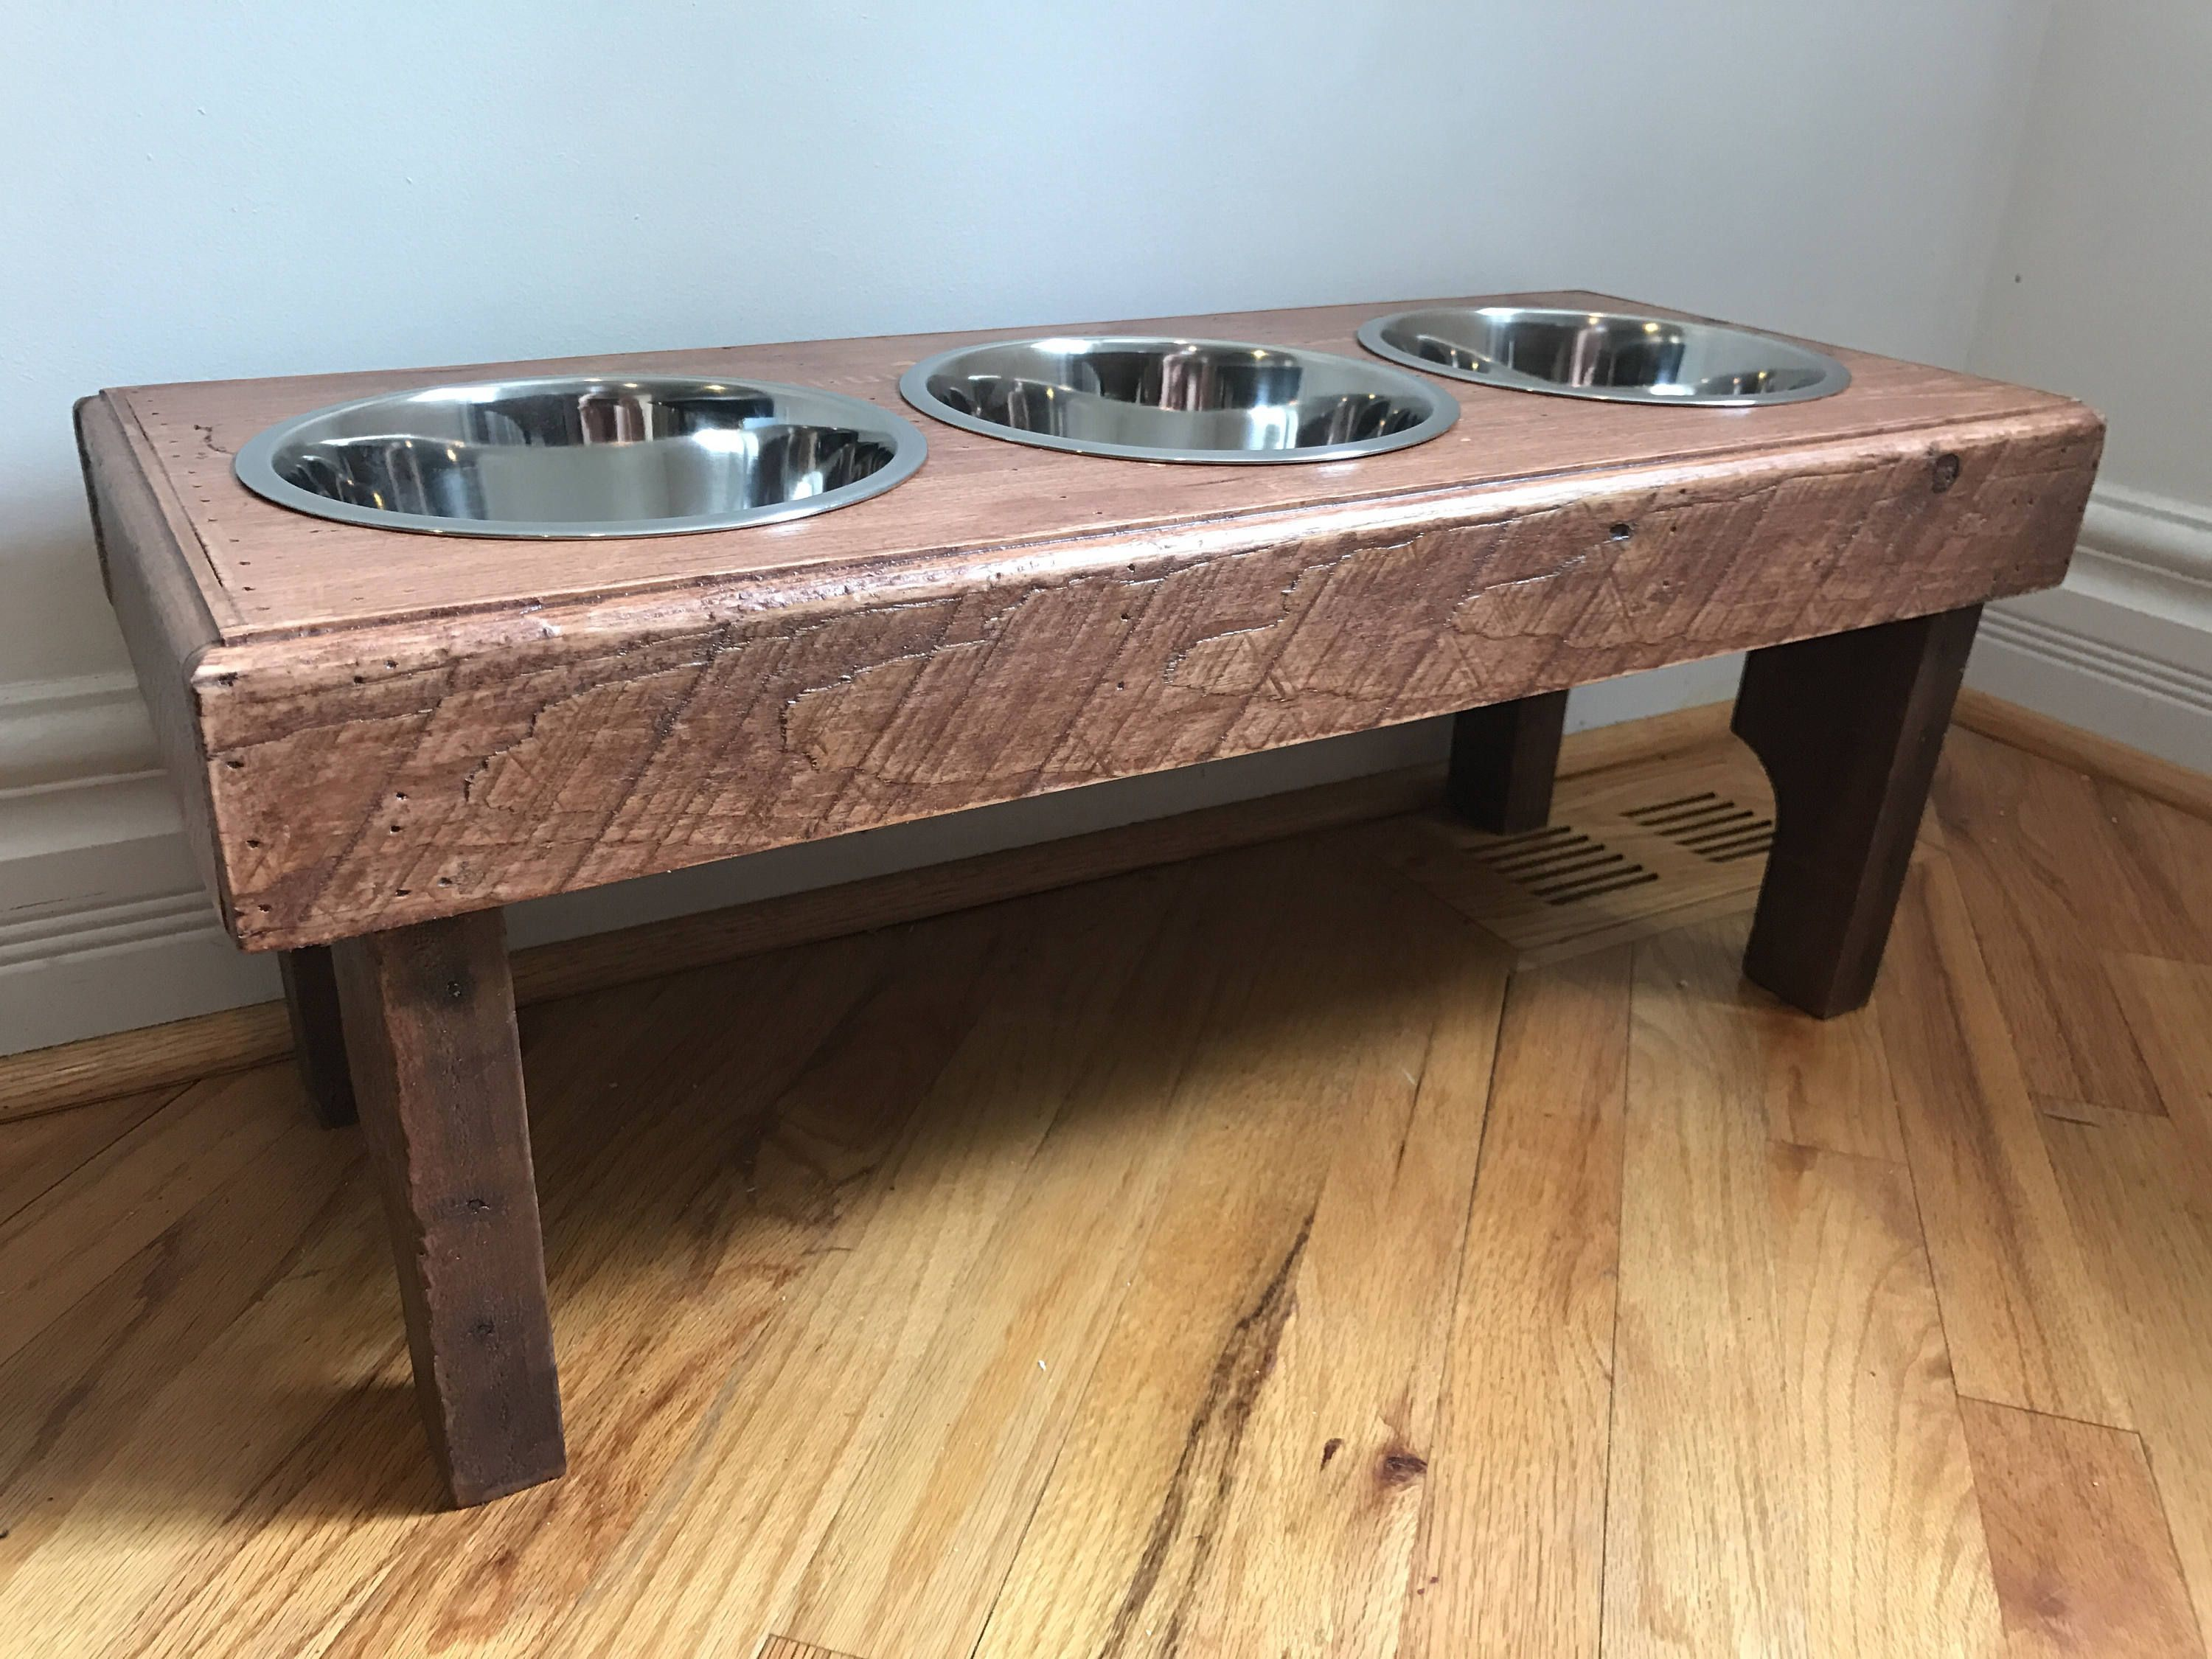 Primitive Pallet Dog Bowl Stand Elevated Pet Feeding Station Rustic 3 Bowls Included Custom Sizes By Kustomwood On Etsy